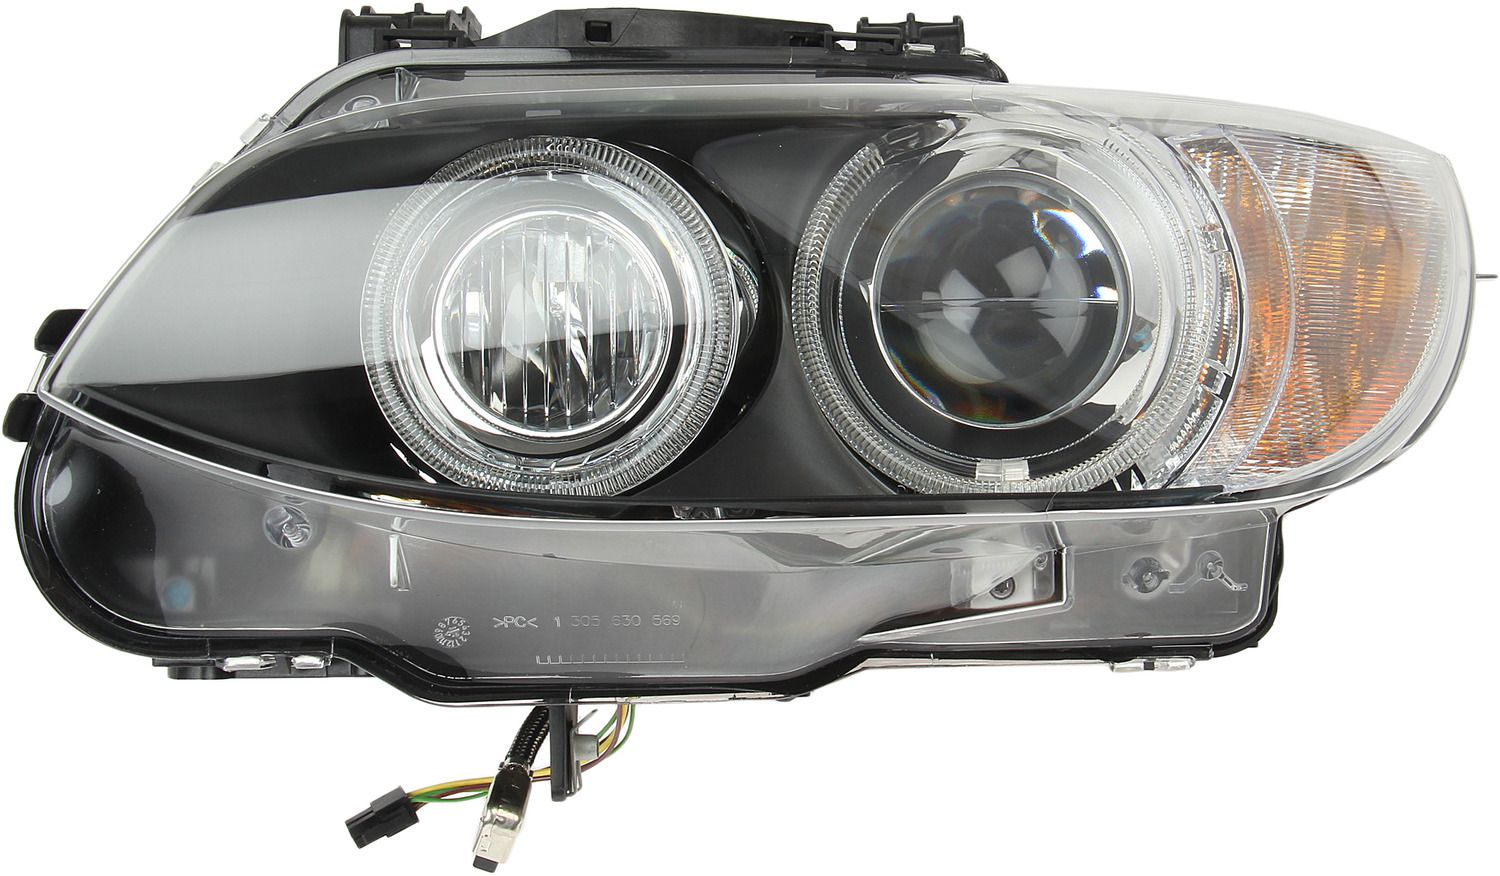 BMW 335i Headlight Assembly Replacement (Dorman, Hella